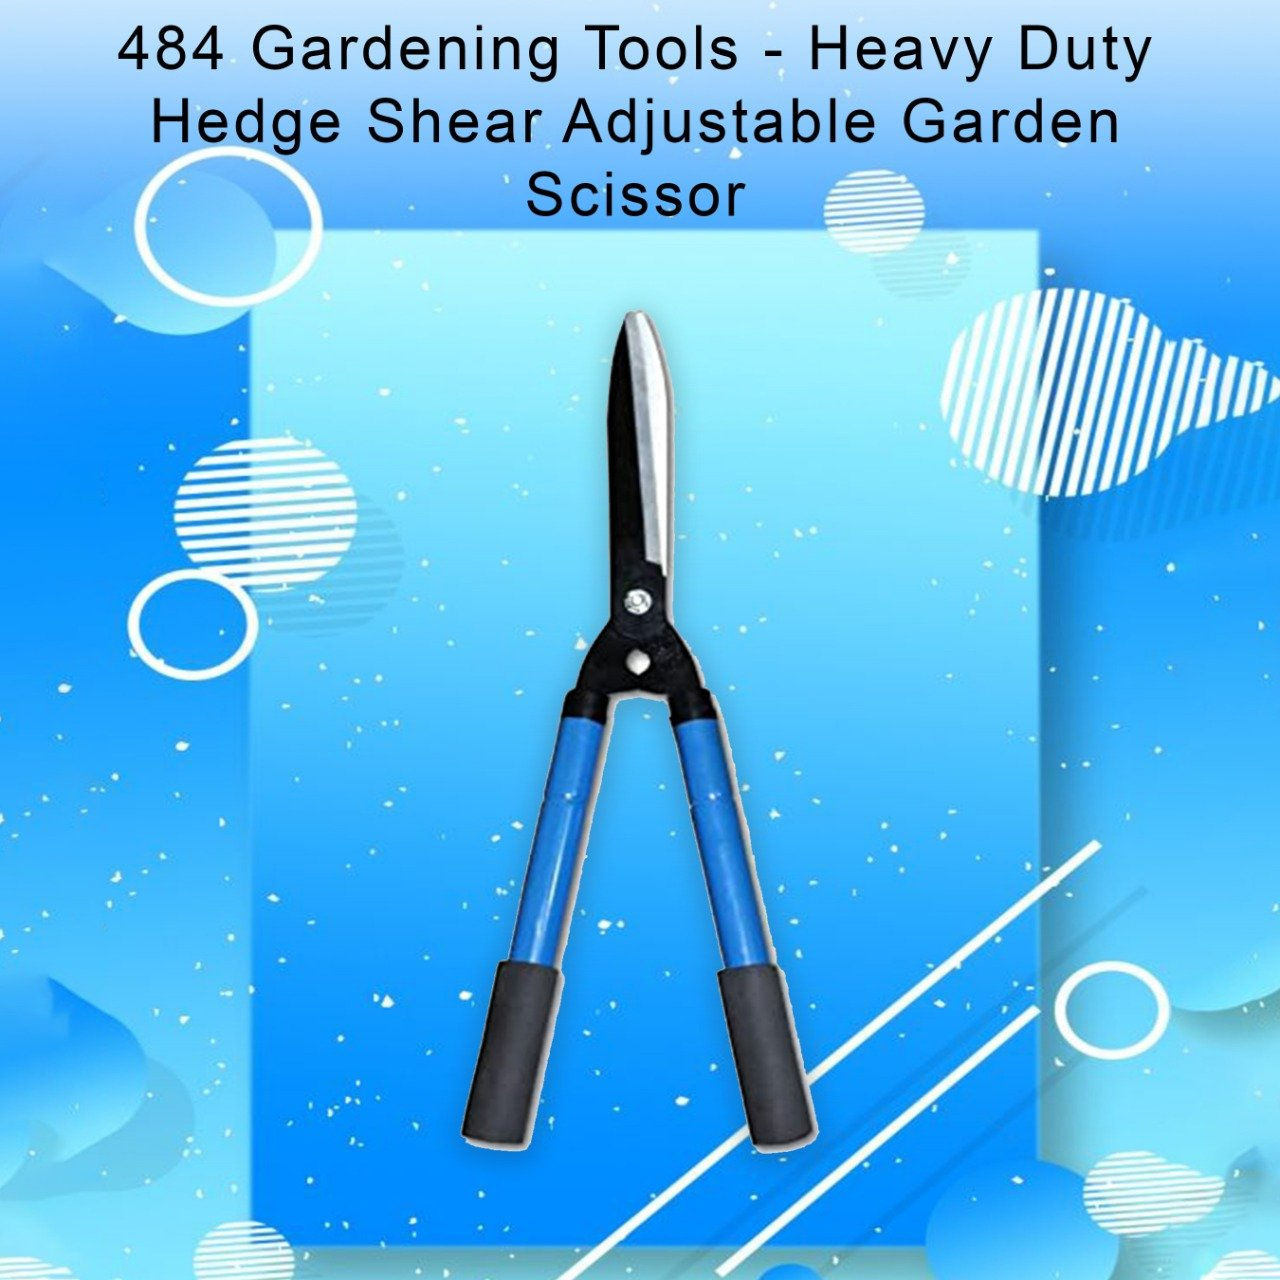 484 Gardening Tools - Heavy Duty Hedge Shear Adjustable Garden Scissor with Comfort Grip Handle